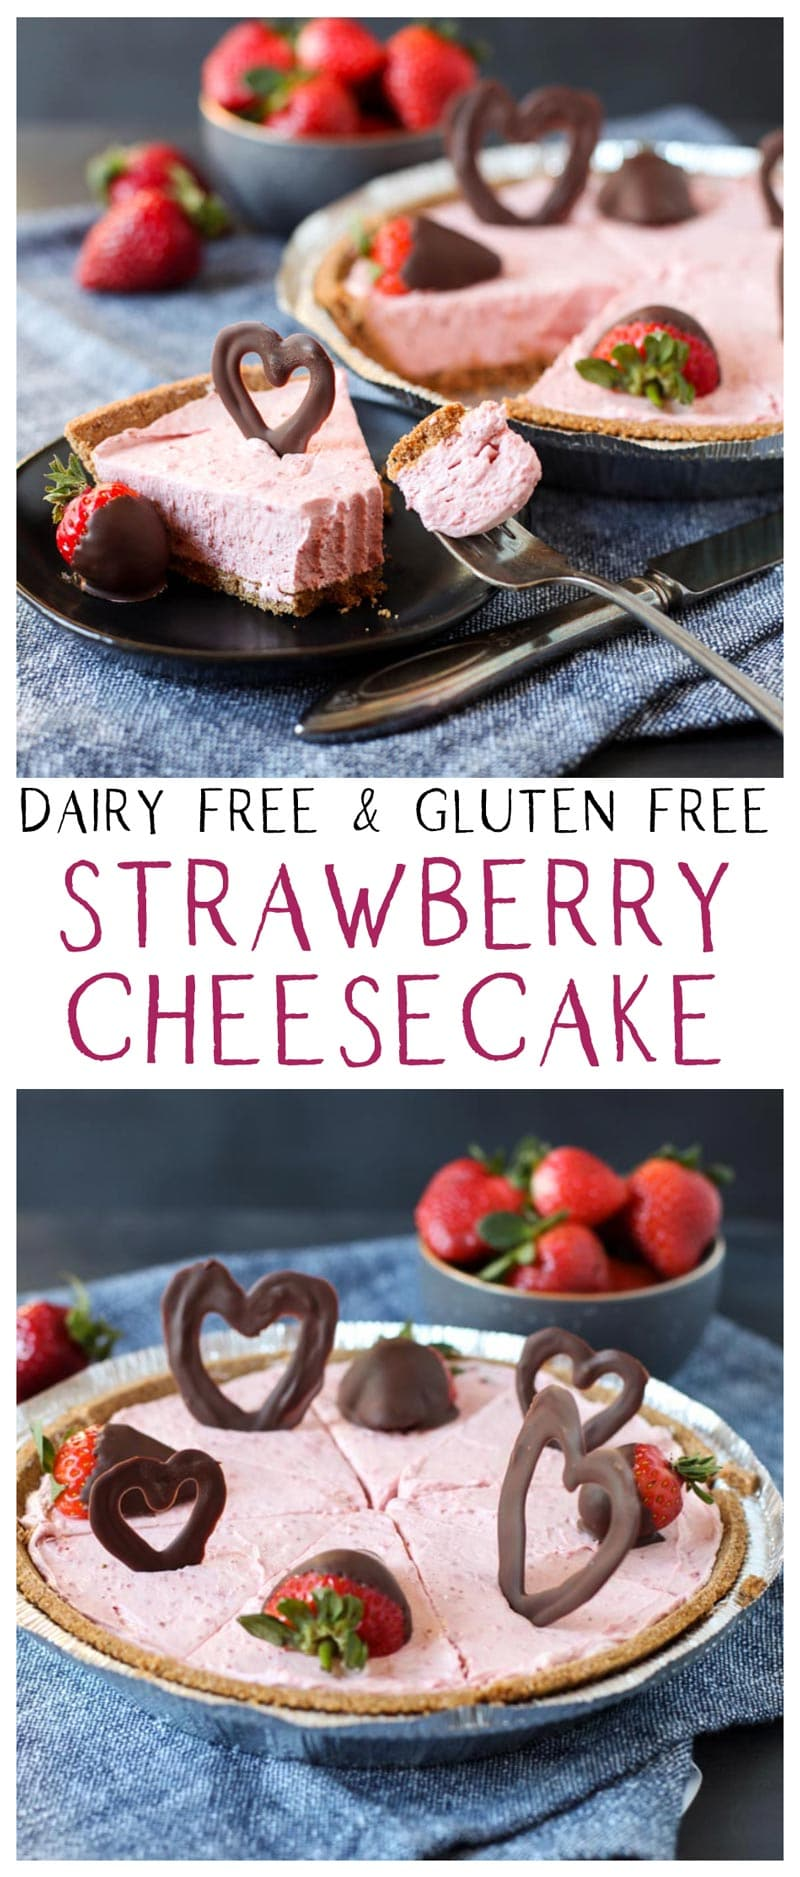 image collage of vegan strawberry cheesecake with chocolate hearts